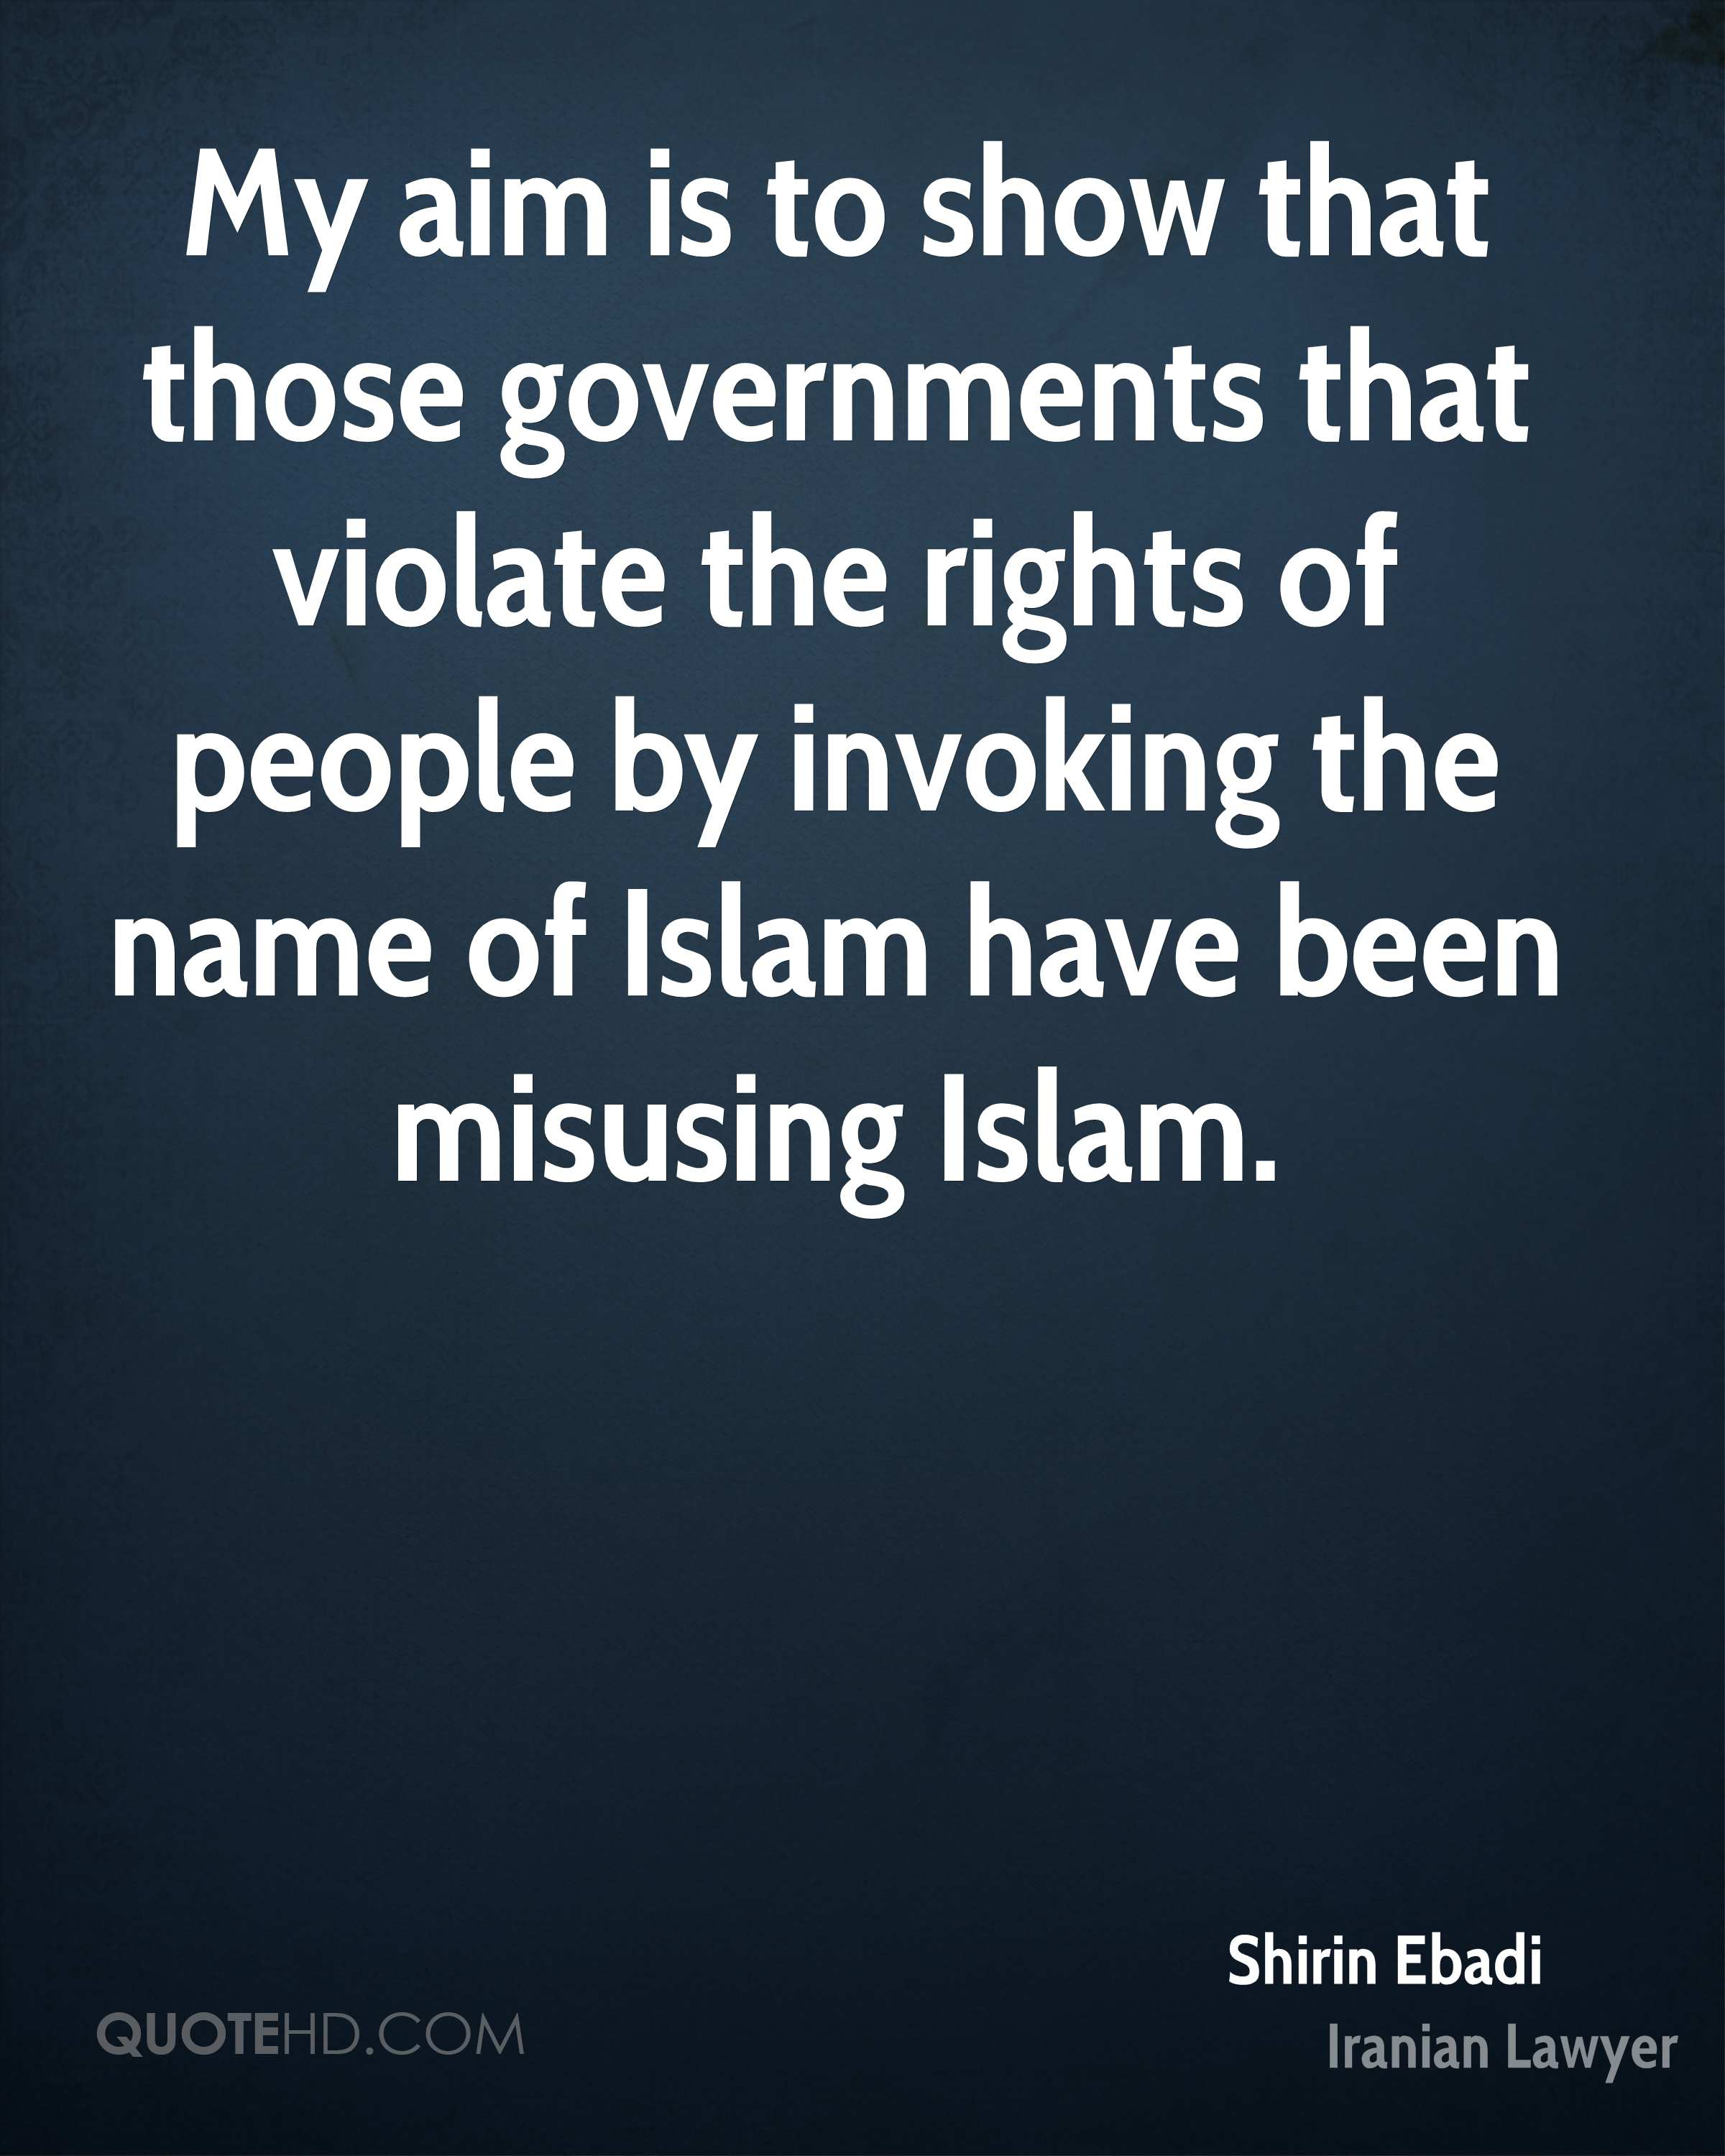 My aim is to show that those governments that violate the rights of people by invoking the name of Islam have been misusing Islam.